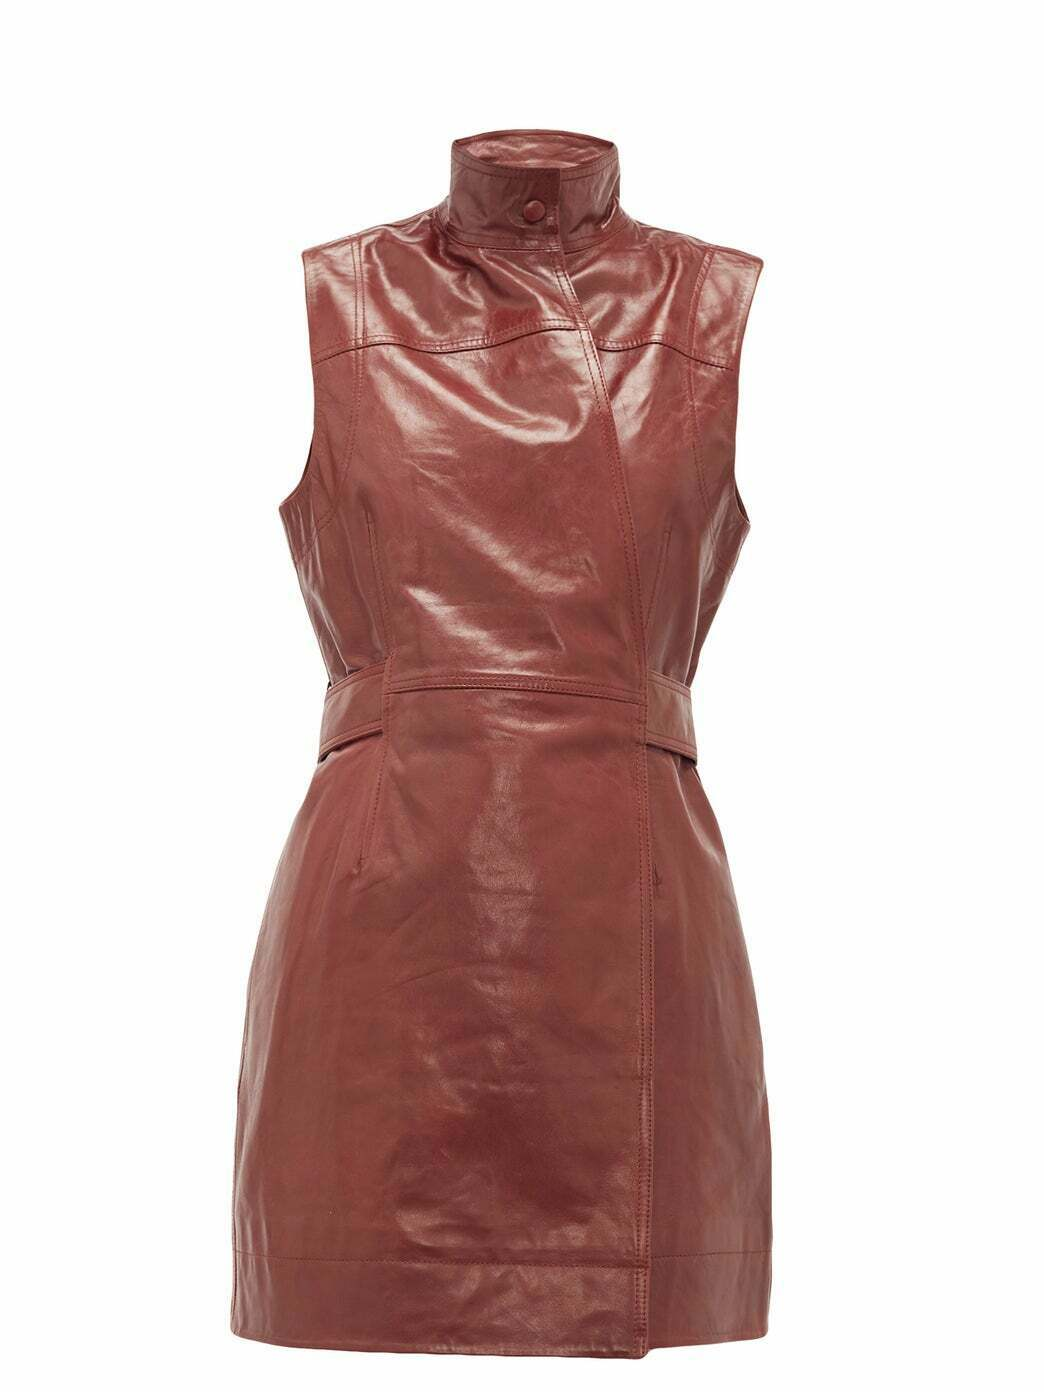 Women's New Coat Collection Sleeveless Real Leather Wrap Dress Classic Jacket